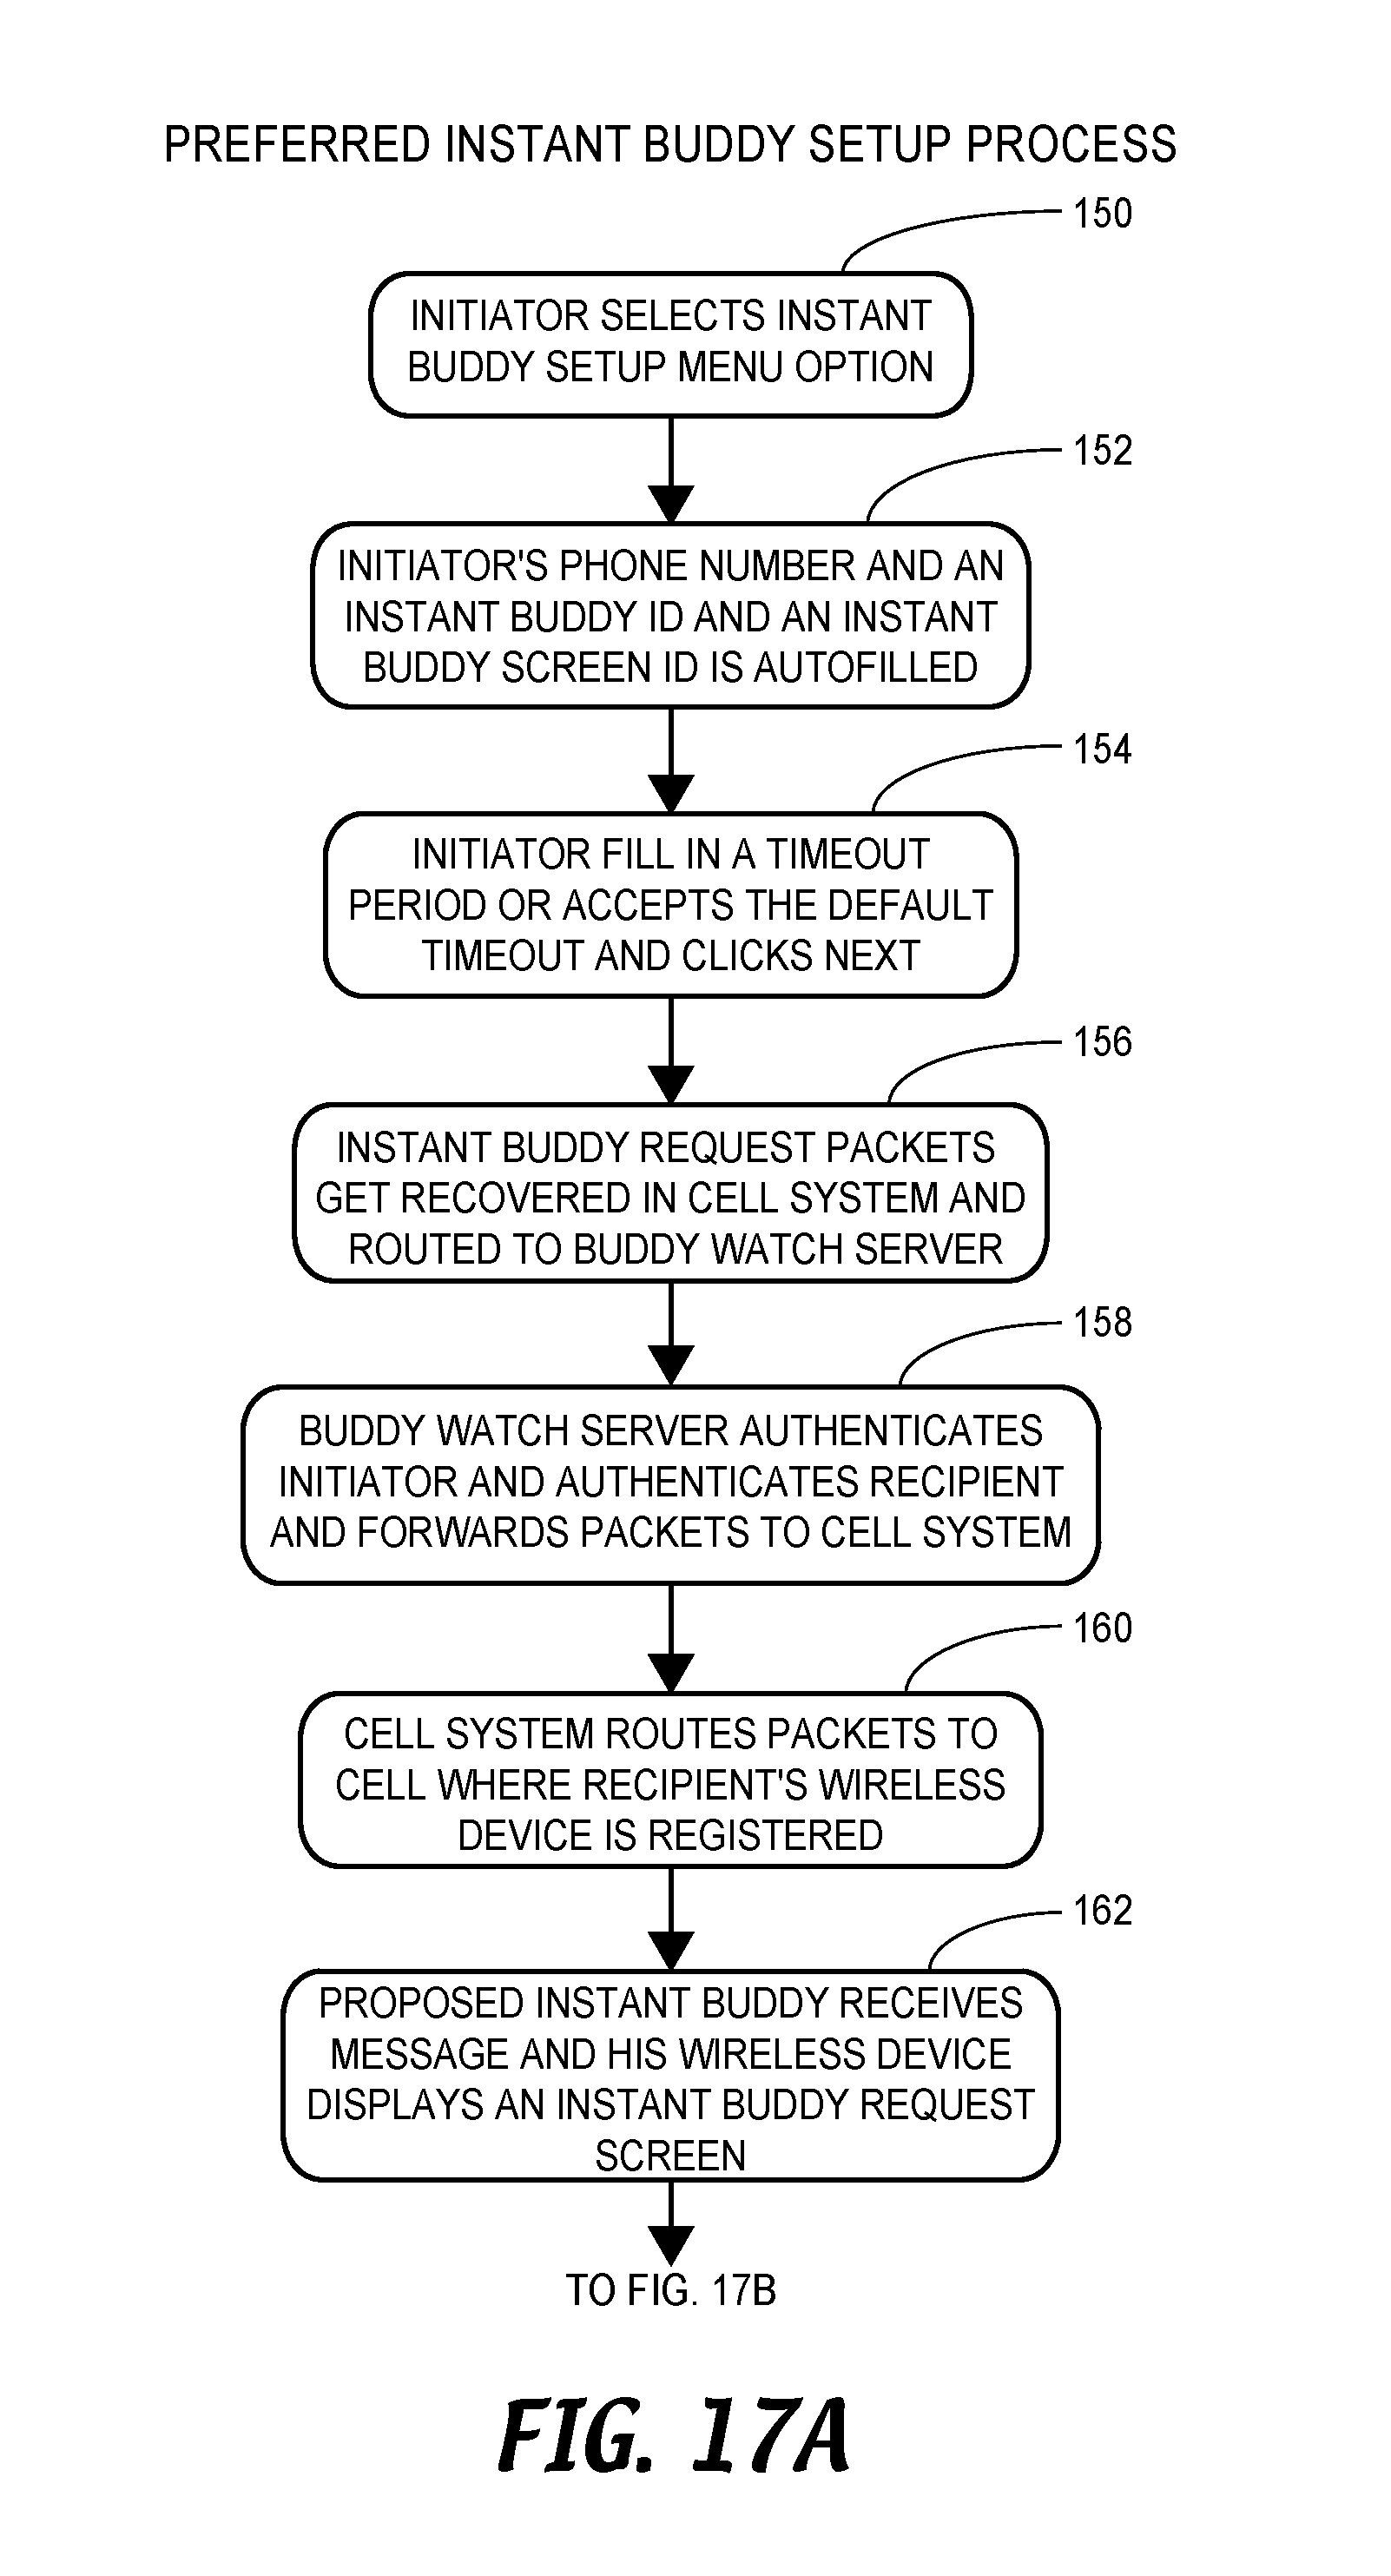 Us9854402b1 Formation Of Wireless Device Location Sharing Group